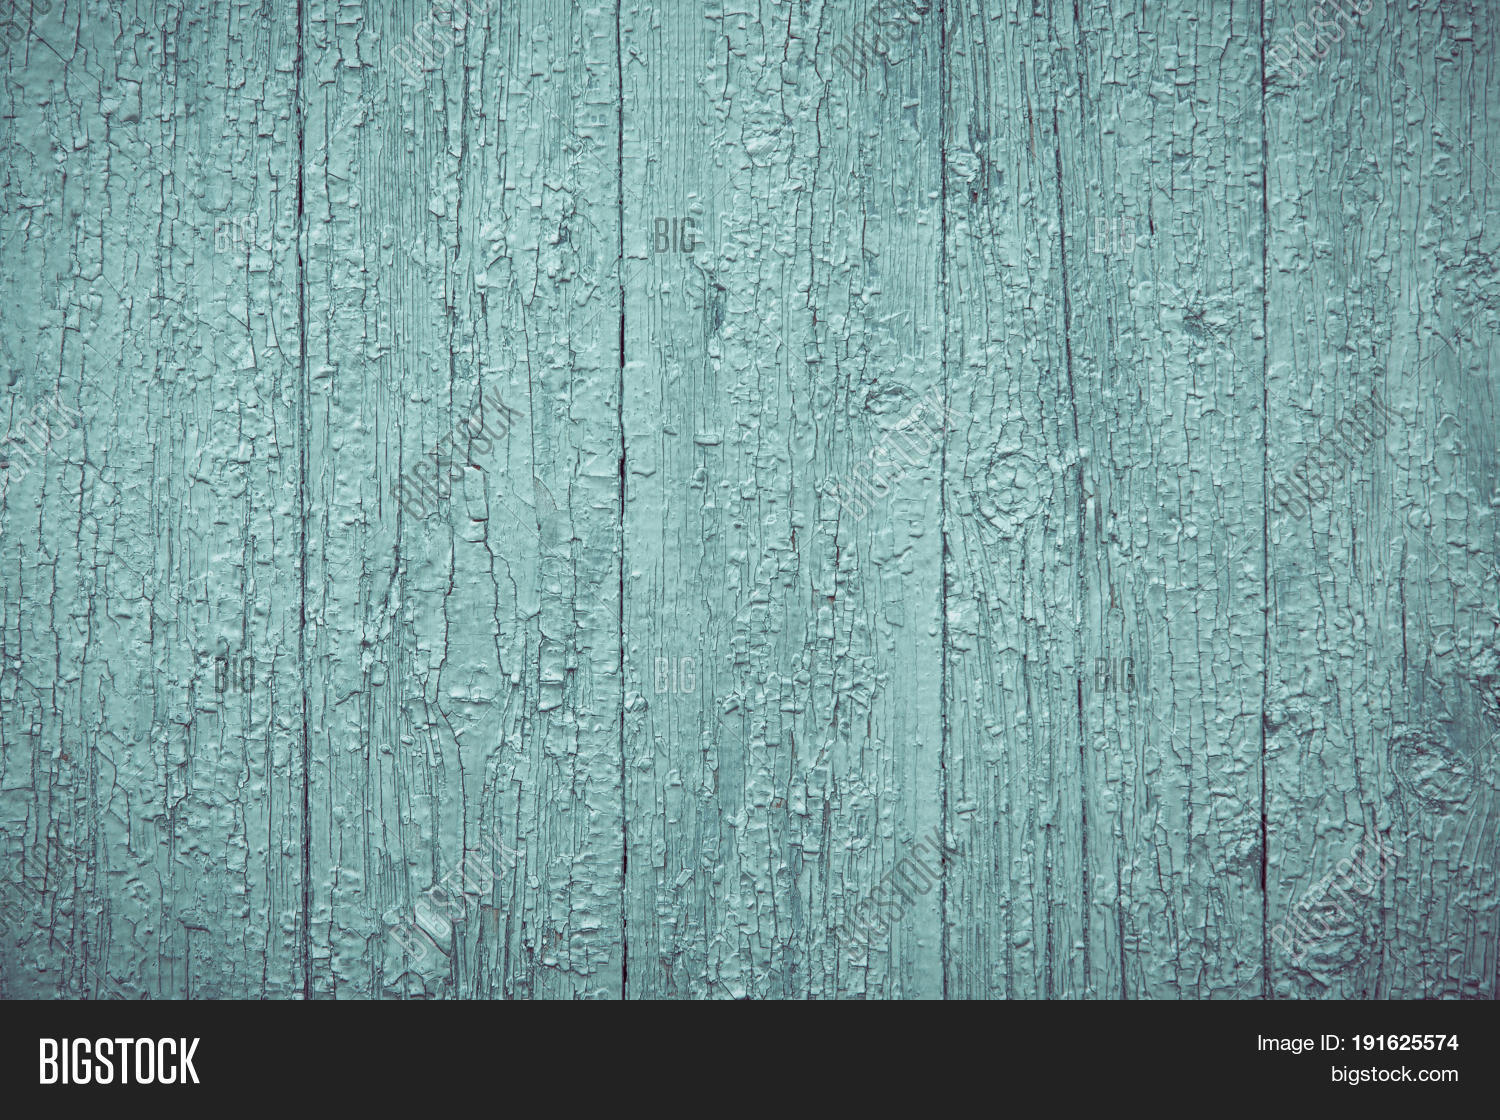 Rustic Old Wood Board Wall Shabby Green Color Background Wooden Vintage Style Texture